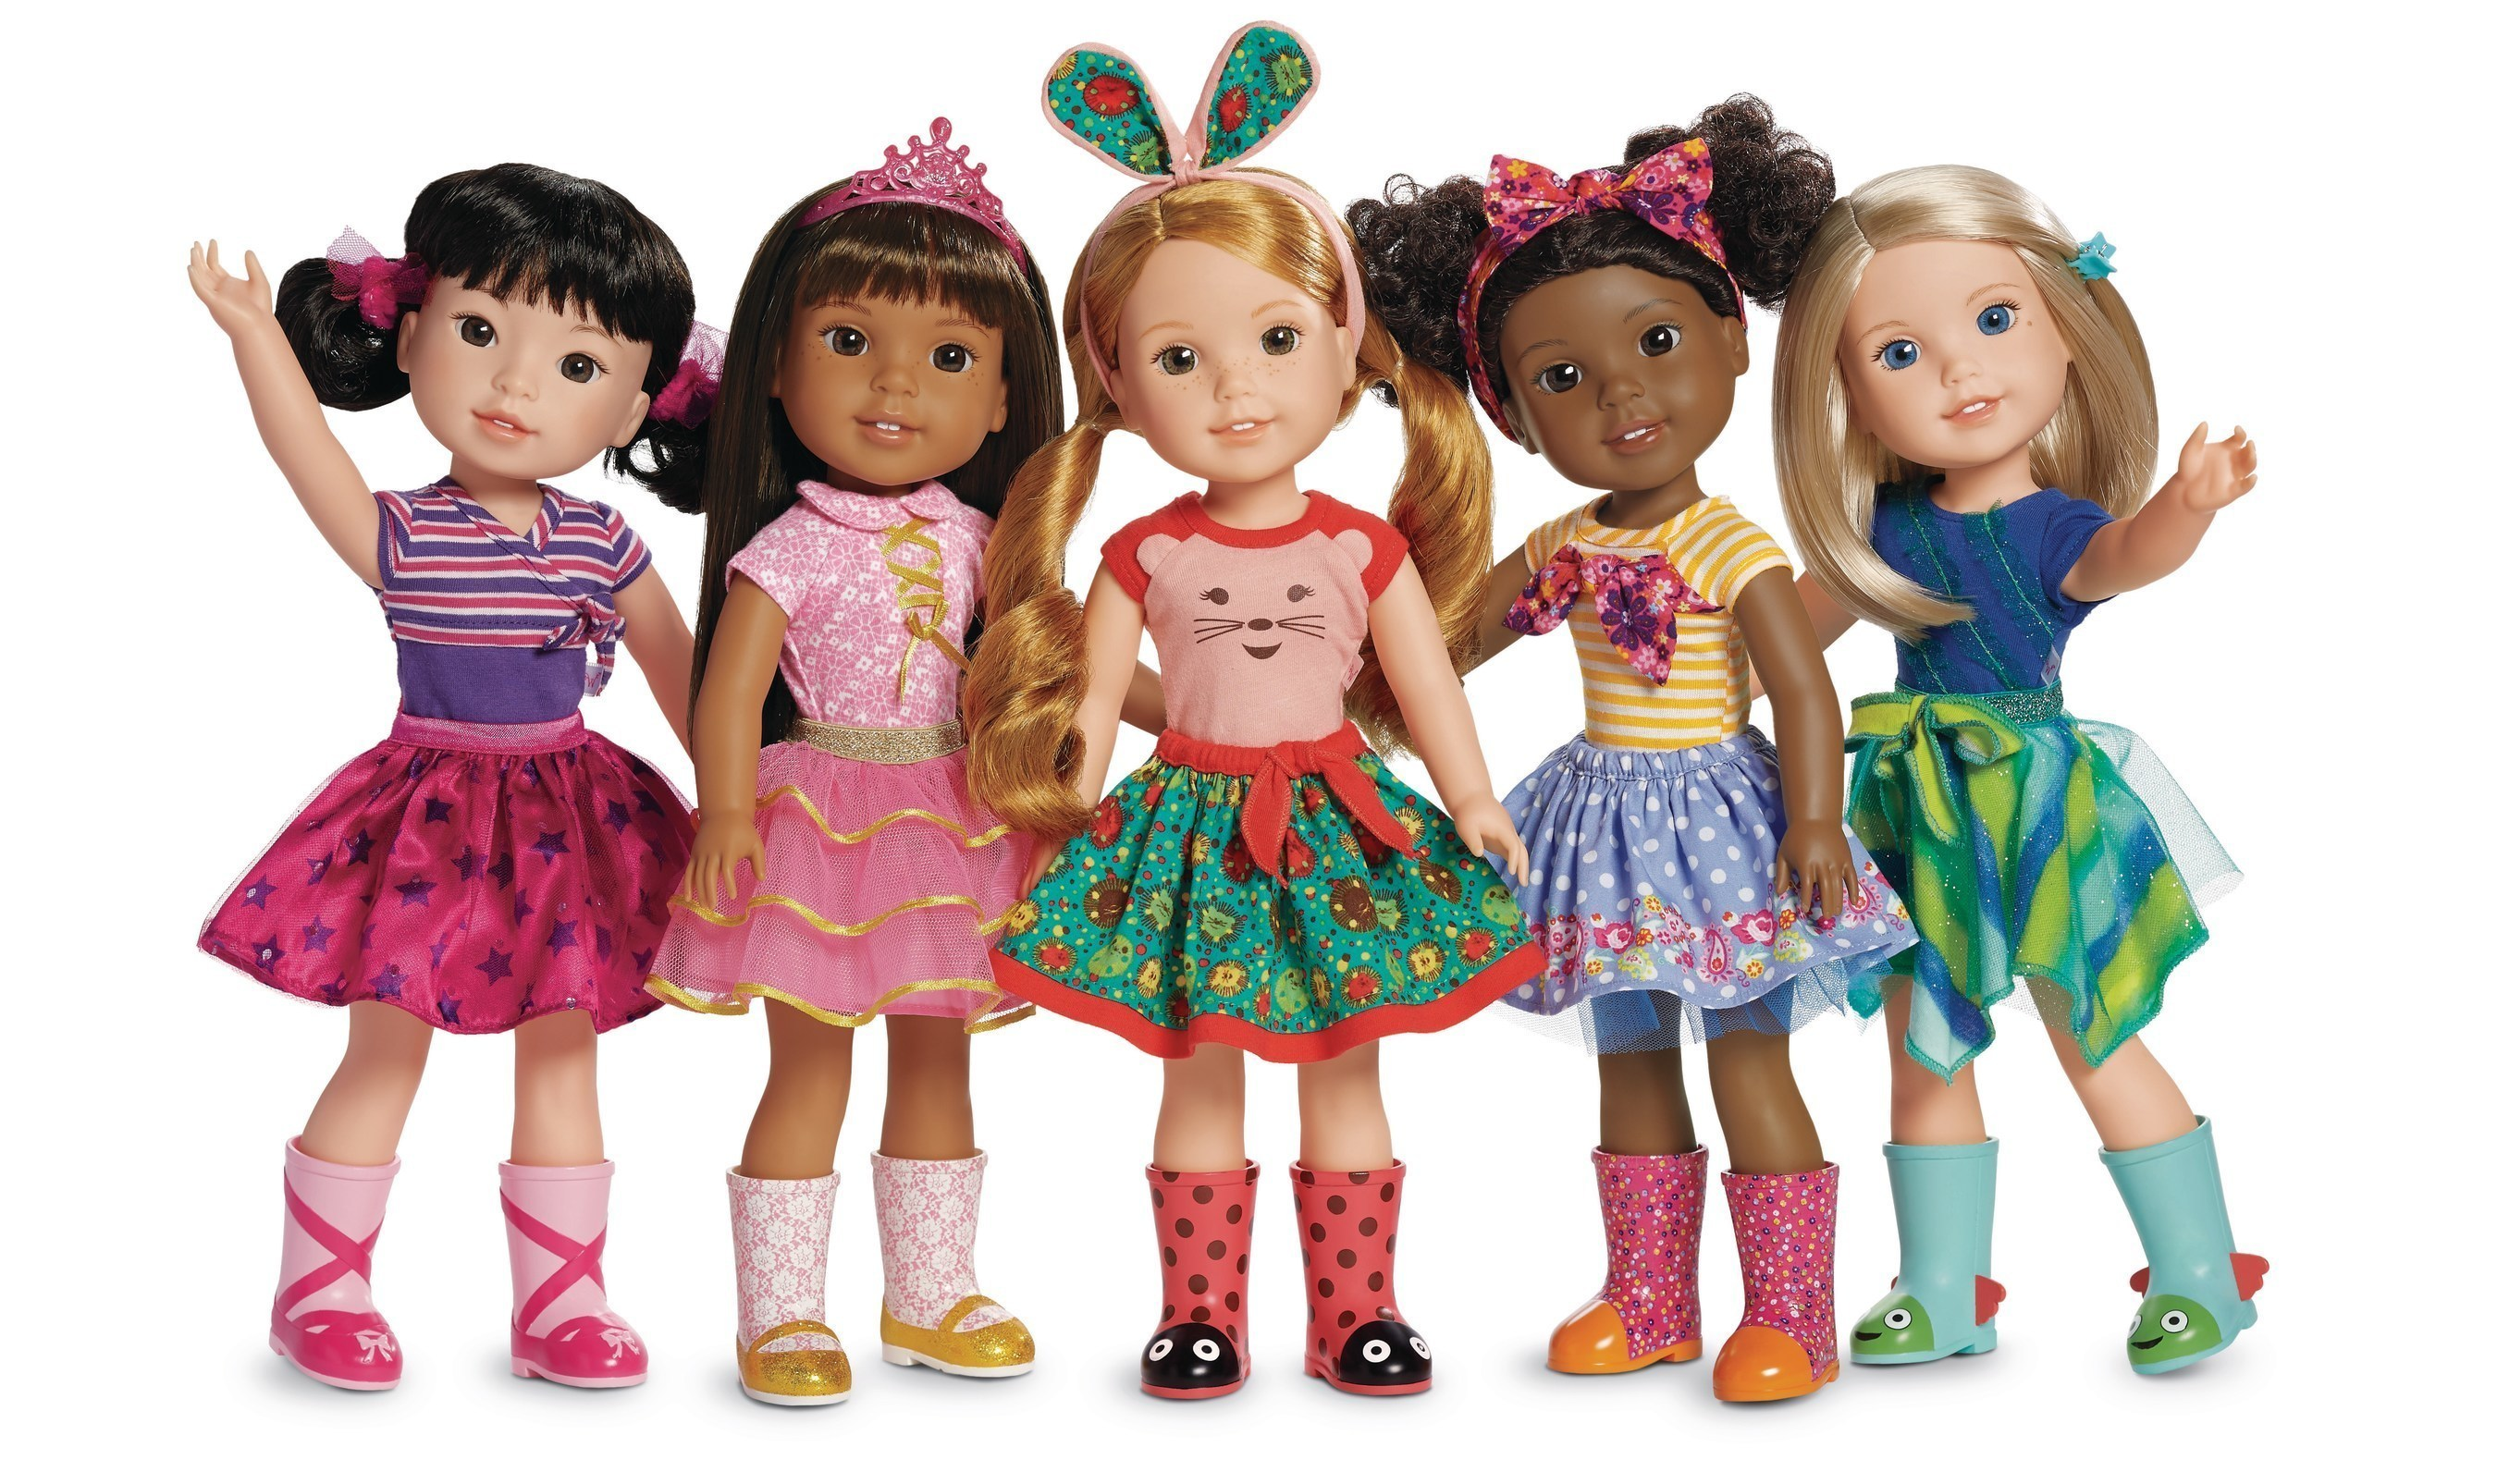 American Girl Debuts WellieWishers -- A New Content And Doll Lifestyle Brand For Younger Girls Ages 5 To 7